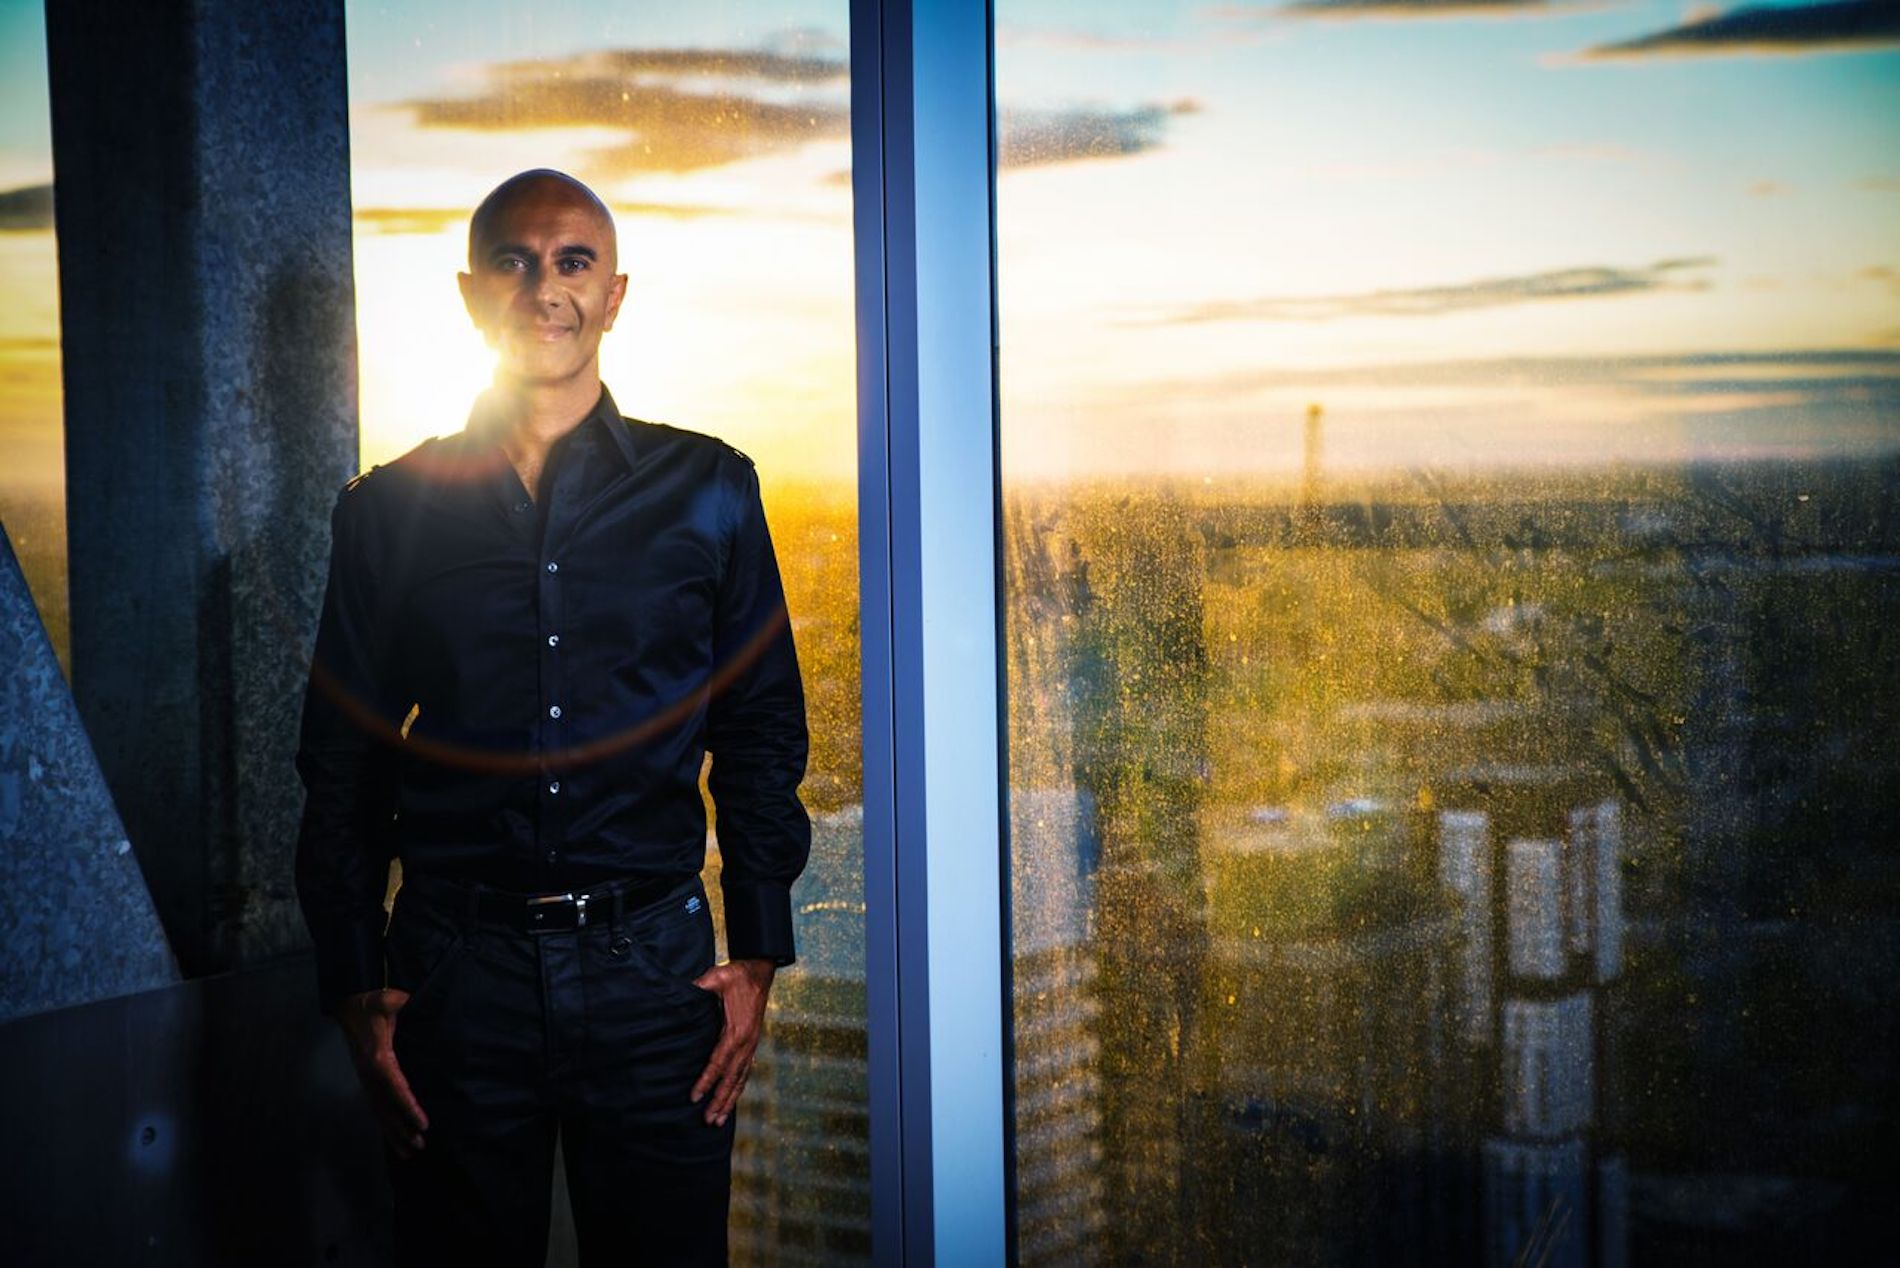 An Exclusive Interview With Robin Sharma On Leadership